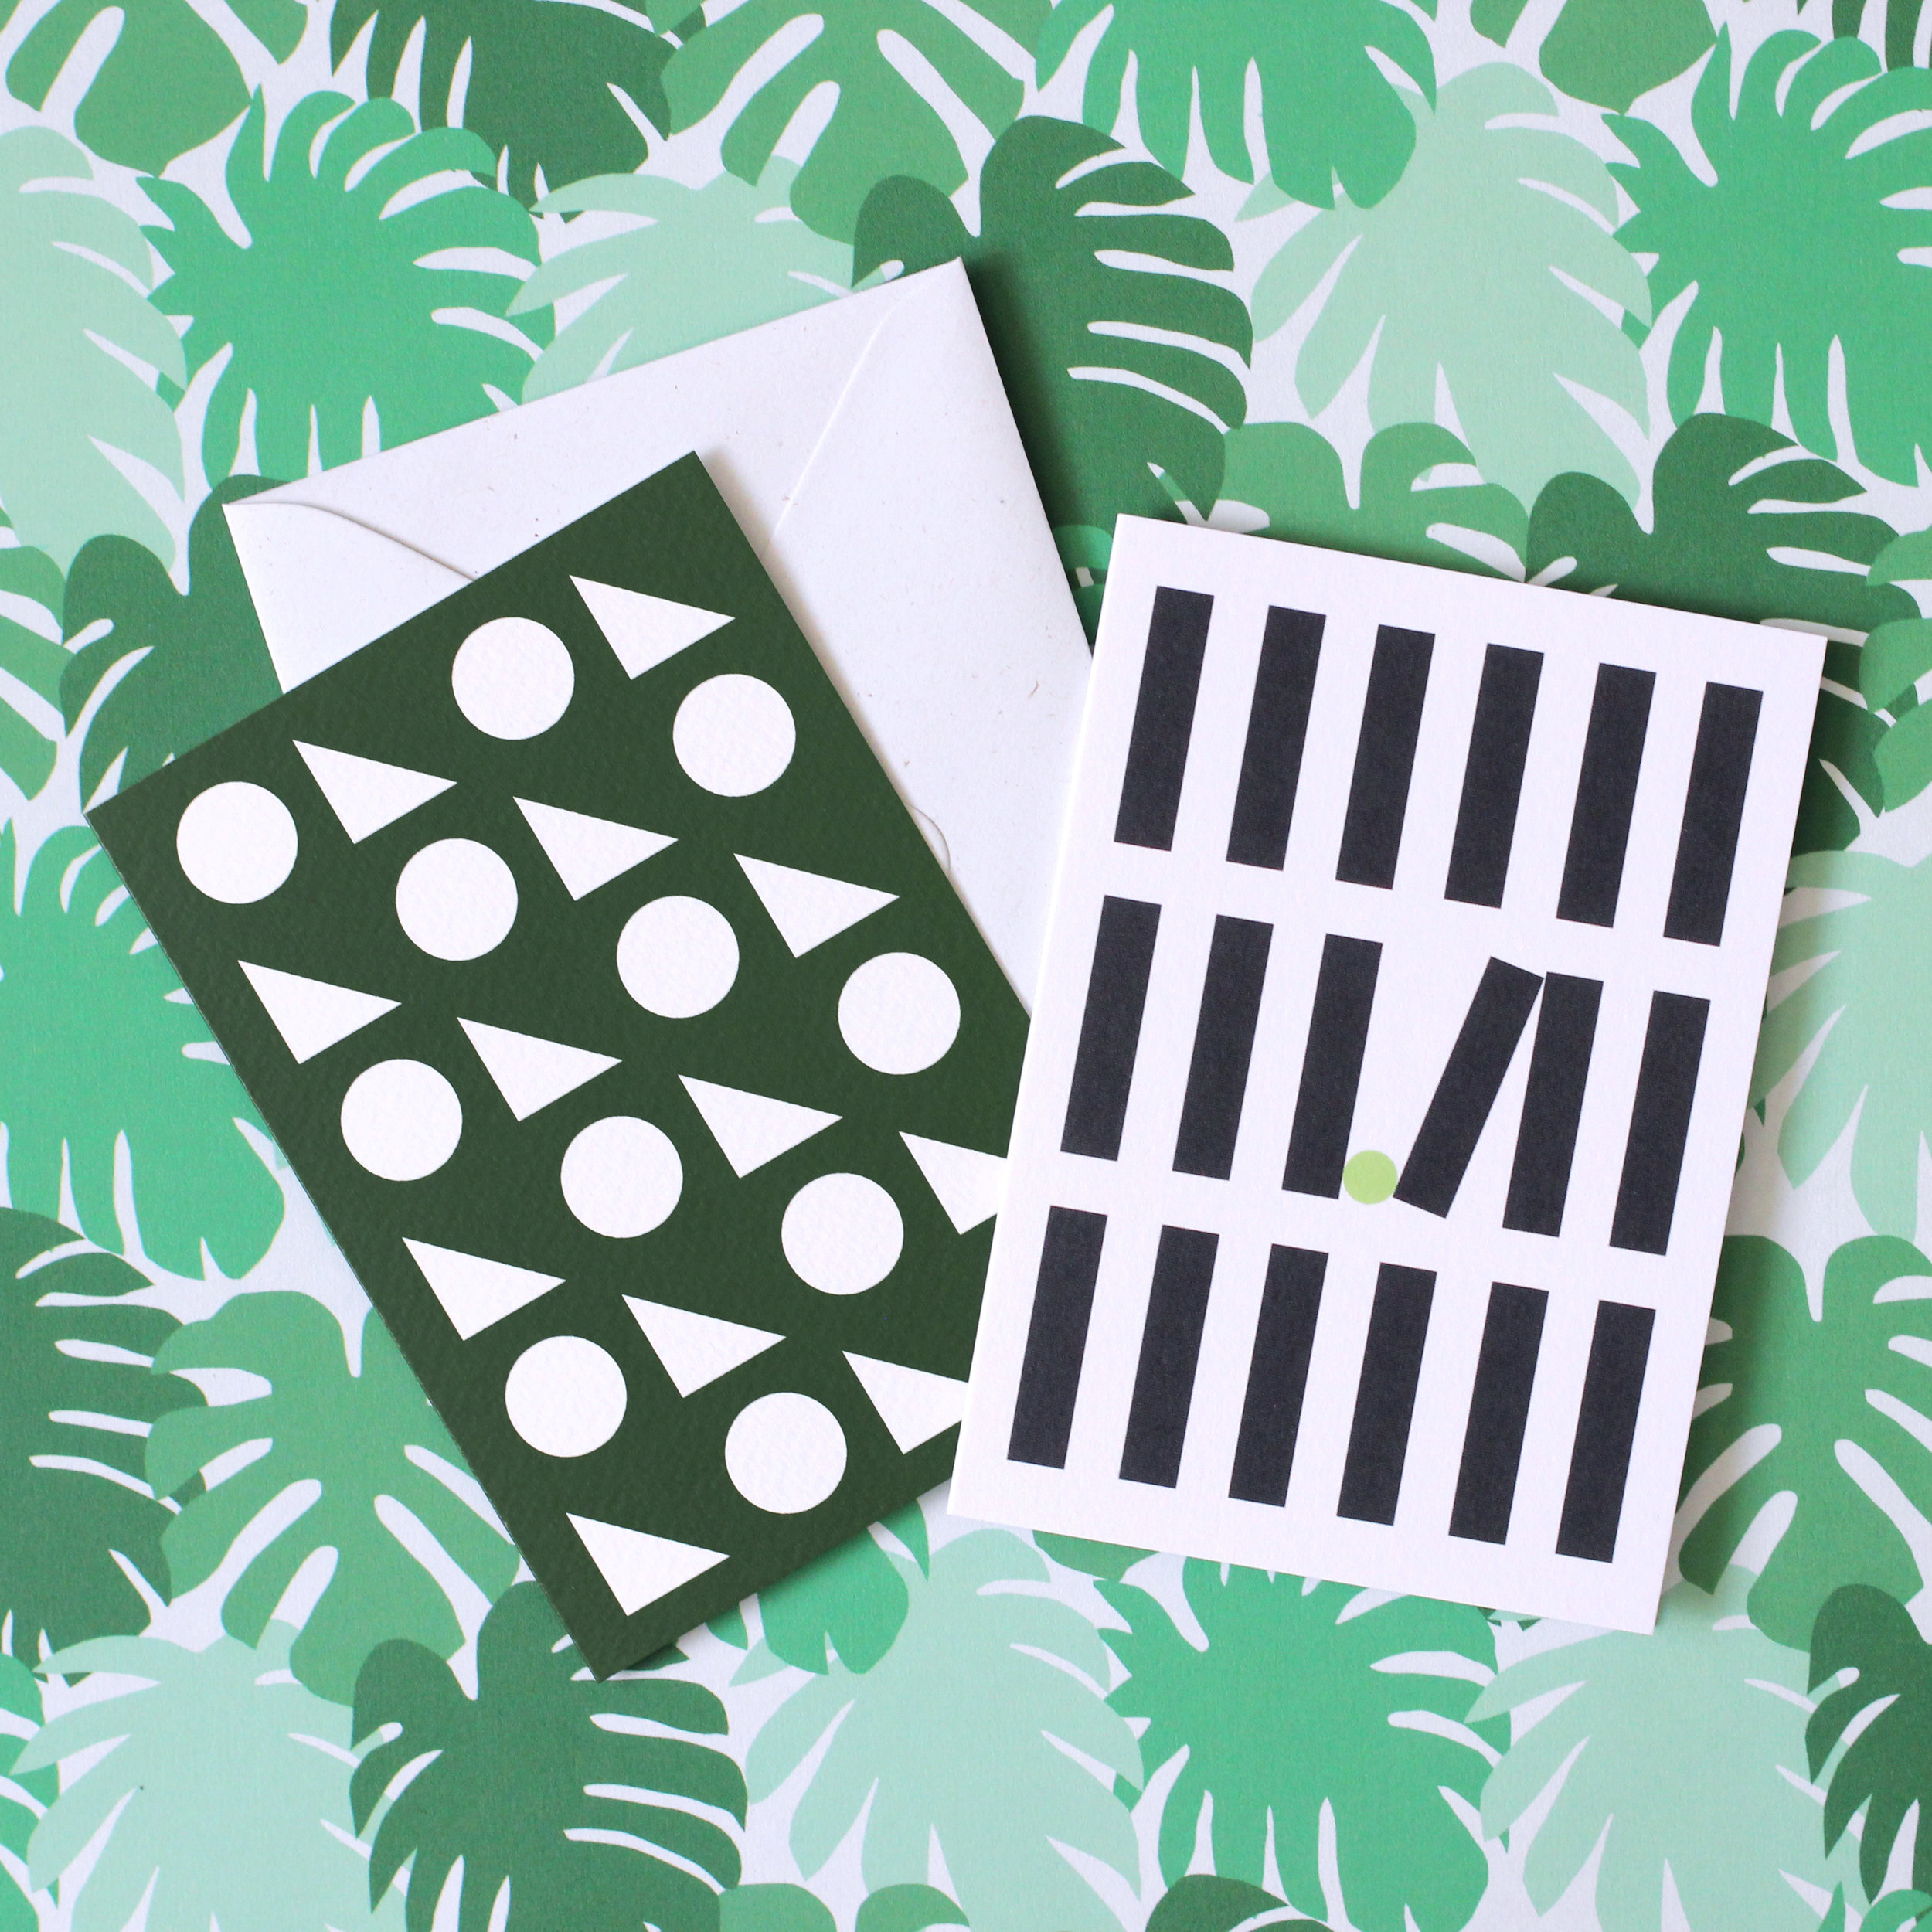 From left to right: 'Jungle wrapping paper, 'Toybox' greetings card, 'Tip off' greetings card